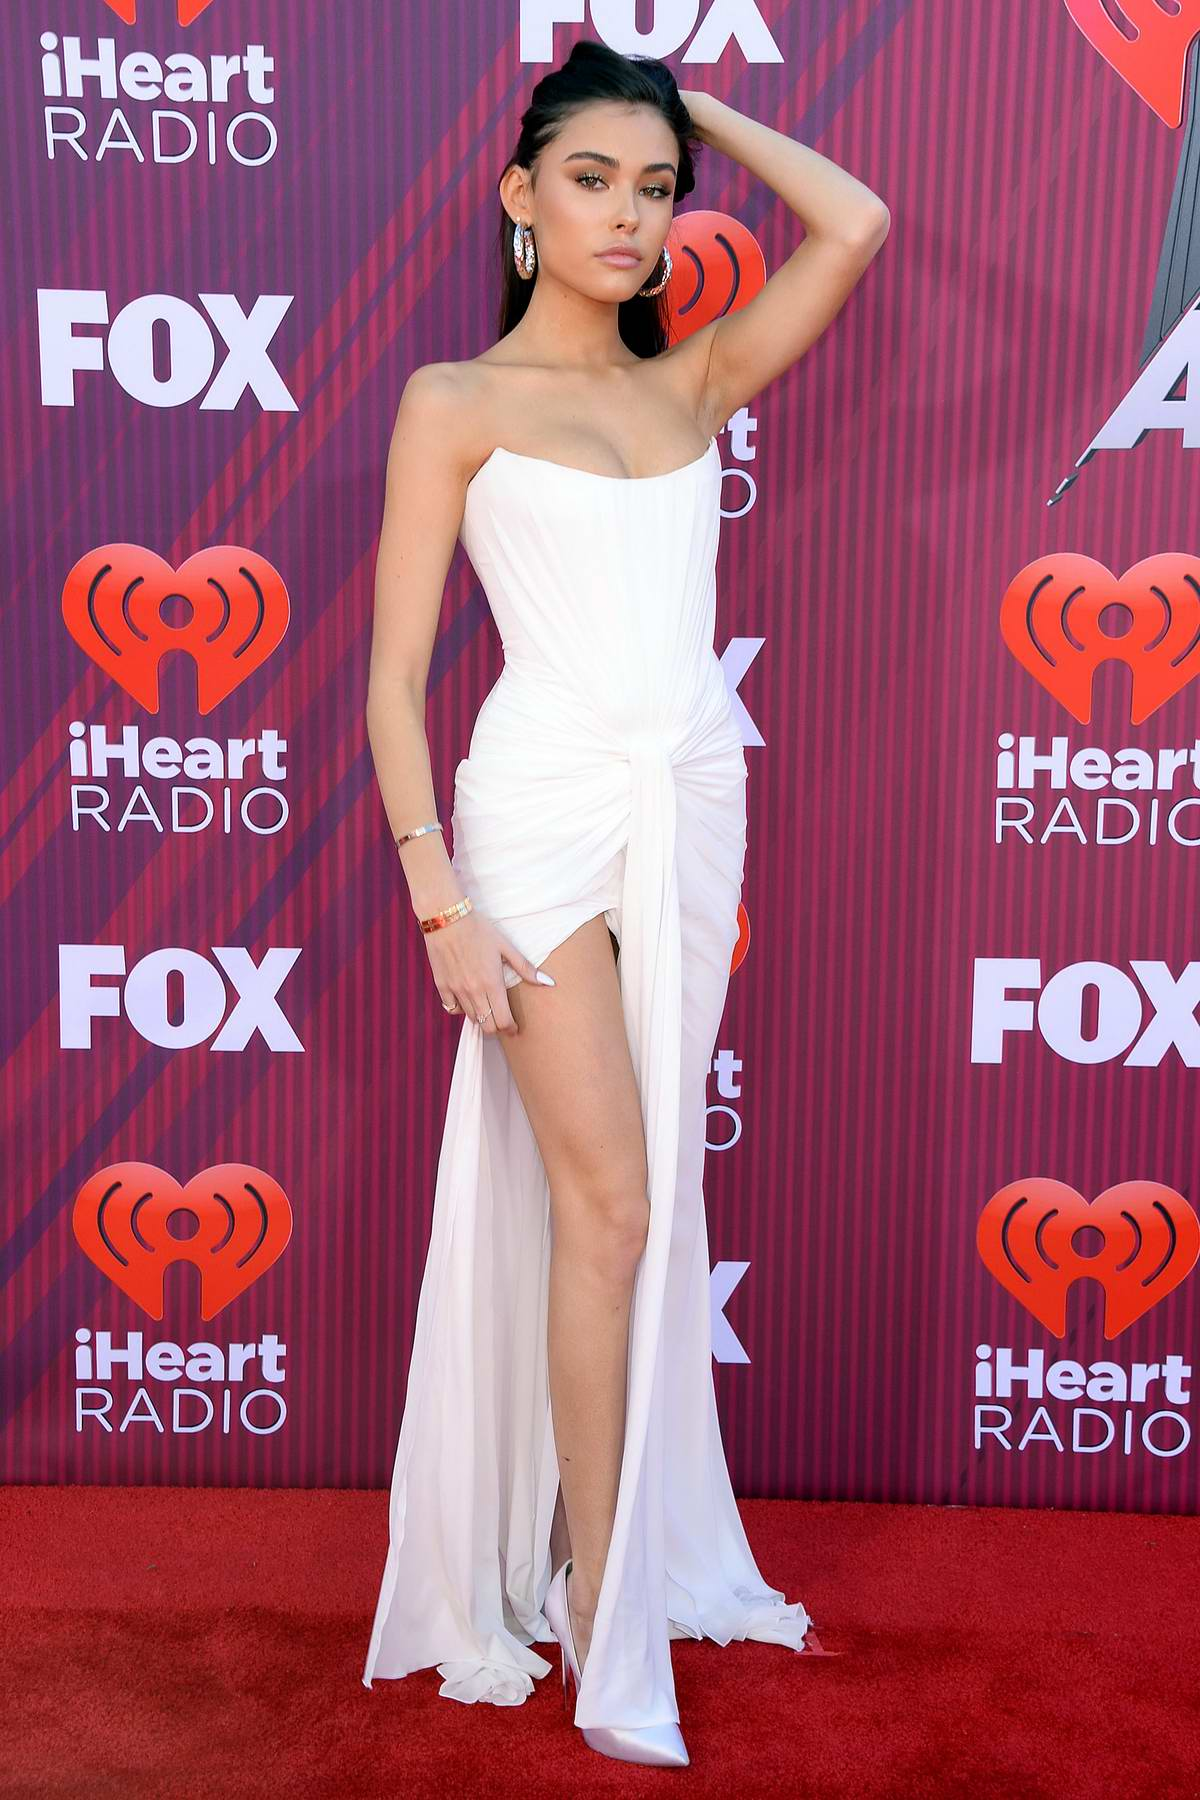 Madison Beer attends the 2019 iHeartRadio Music Awards at Microsoft Theater in Los Angeles